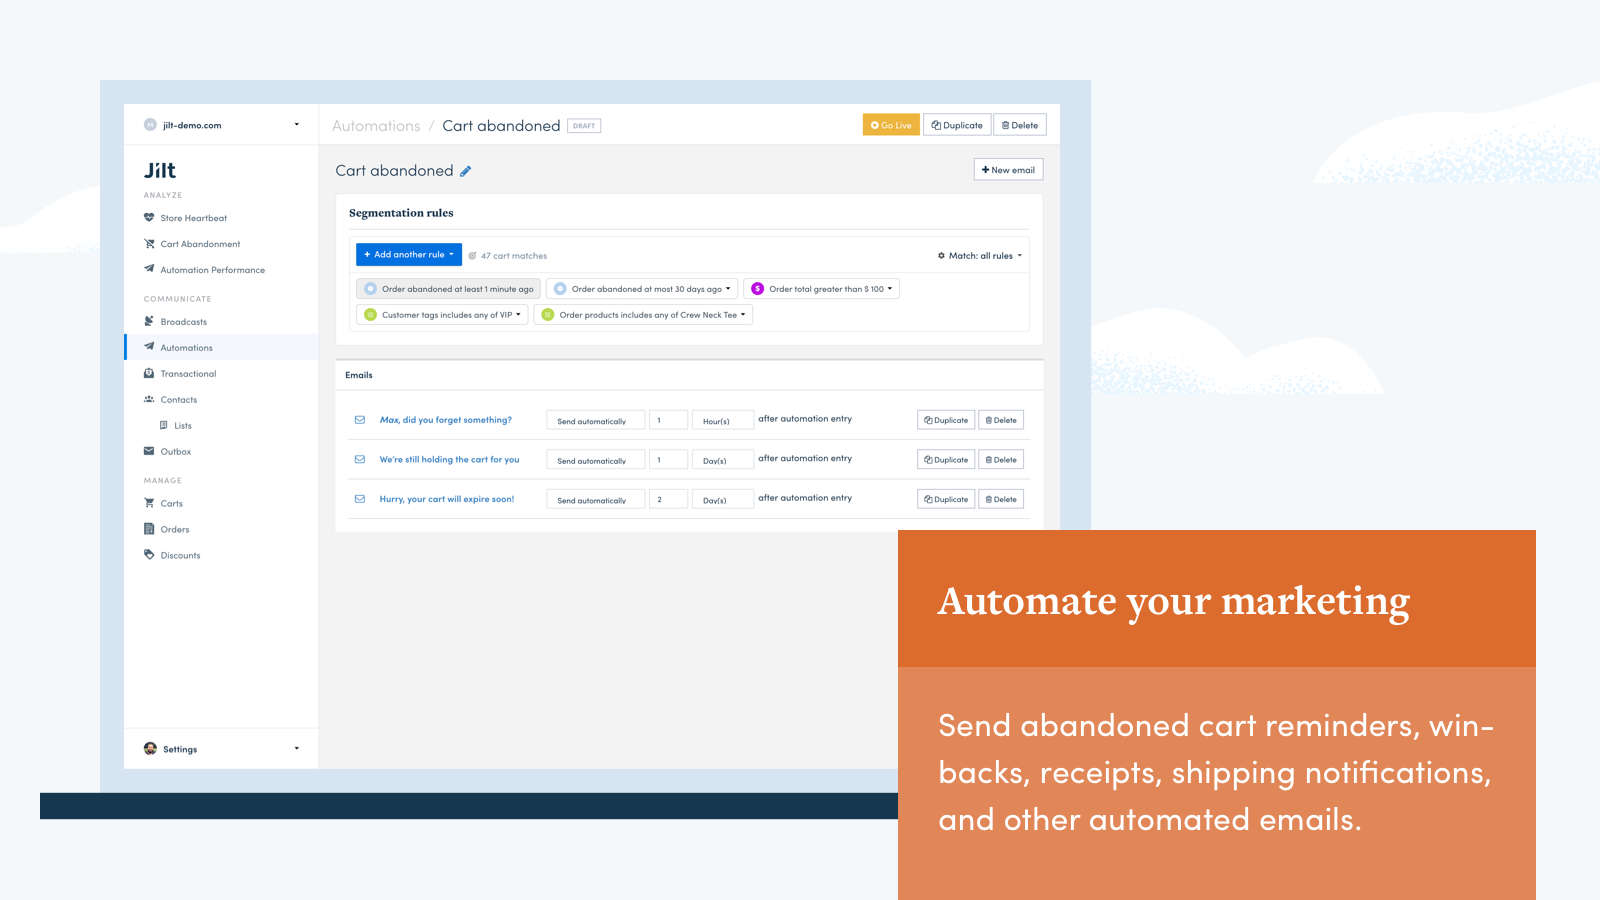 Send abandoned cart reminders, receipts, shipping notifications